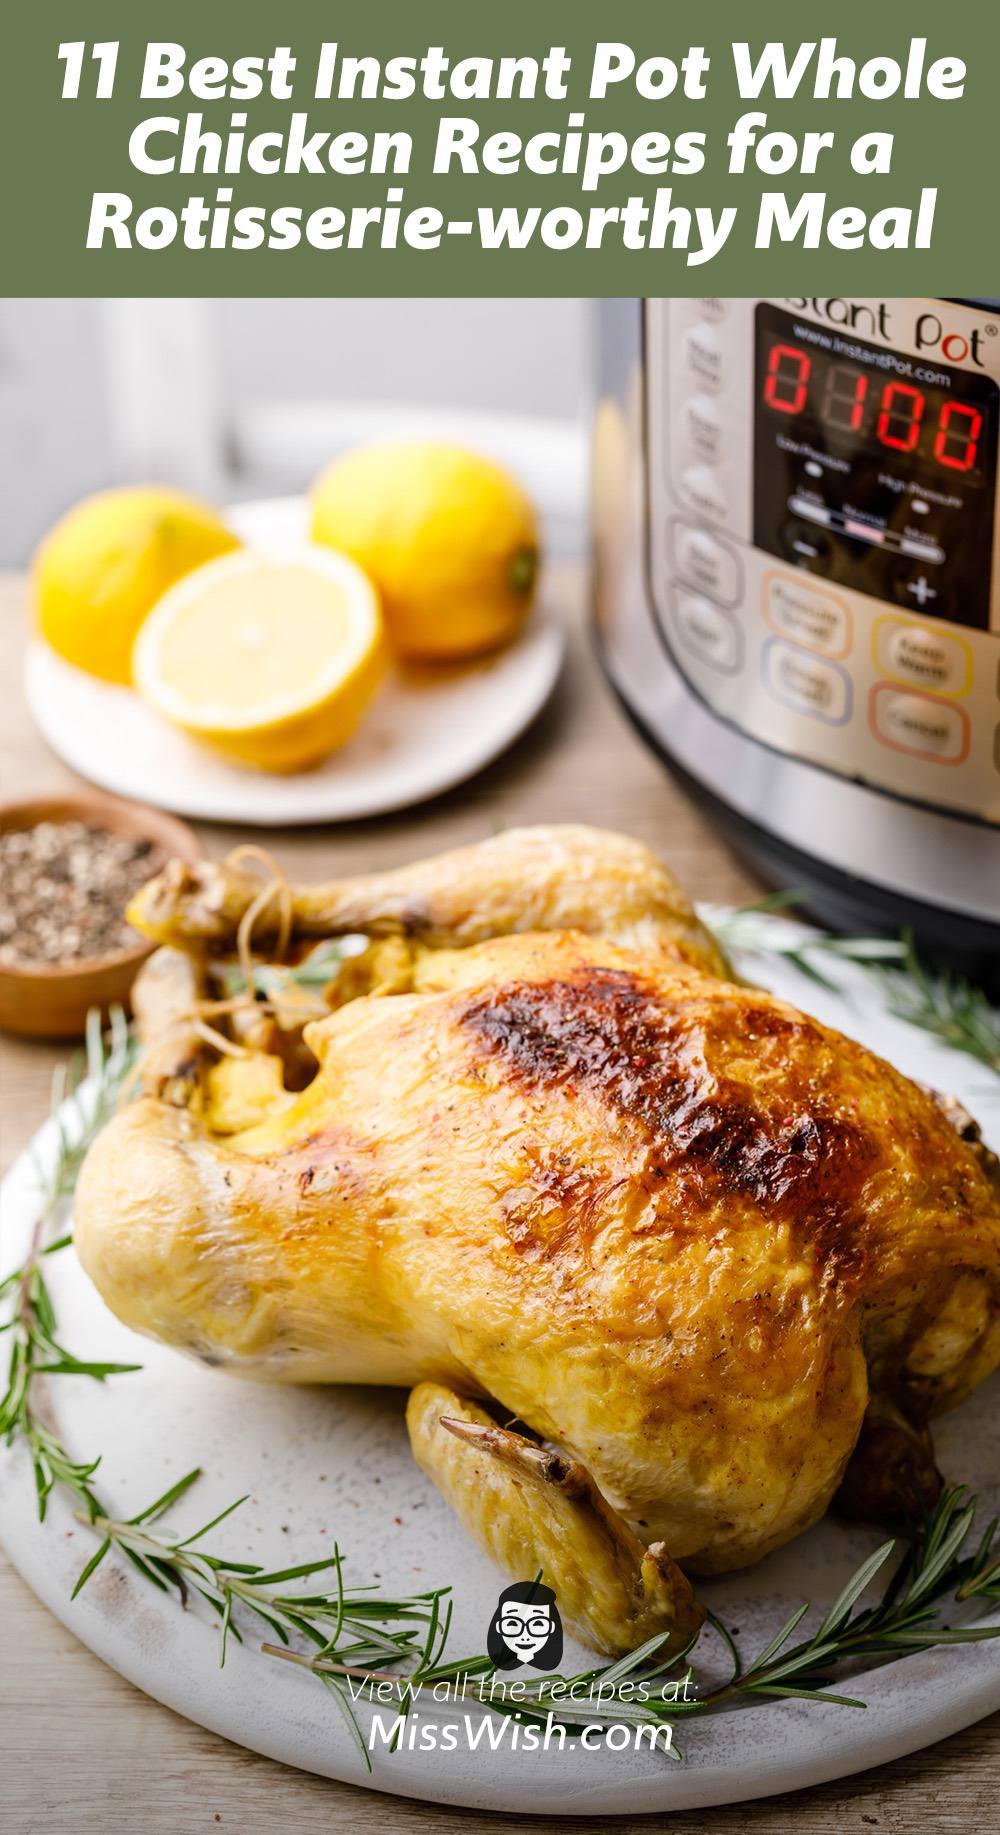 11 Best Instant Pot Whole Chicken Recipes for a Rotisserie-worthy Meal